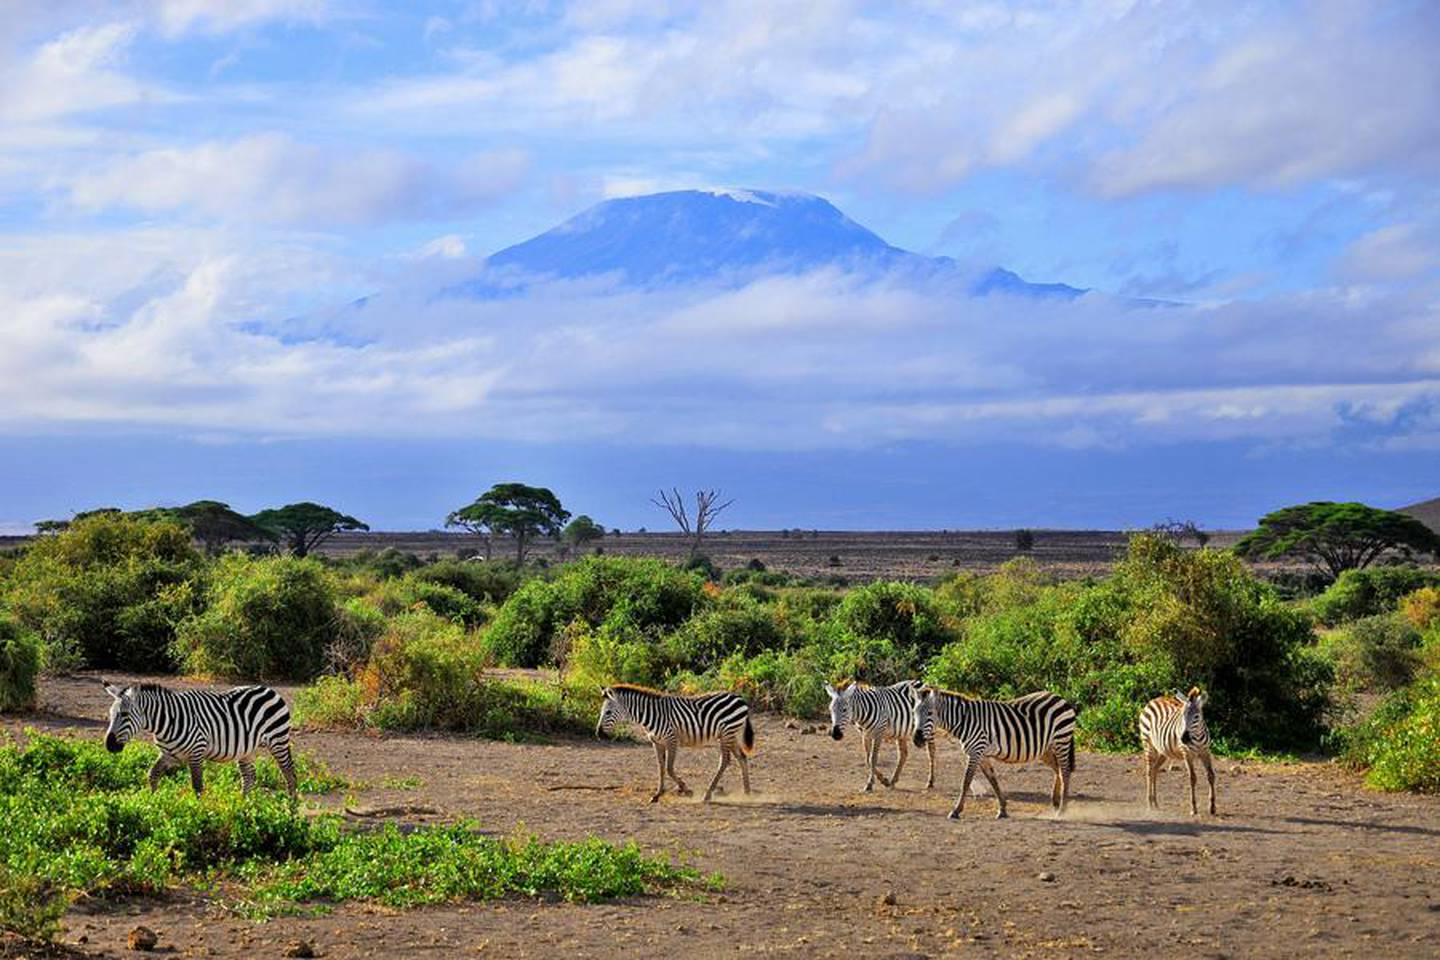 Zebras in front the Mount Kilimanjaro on a beautiful morning, Tanzania, Africa